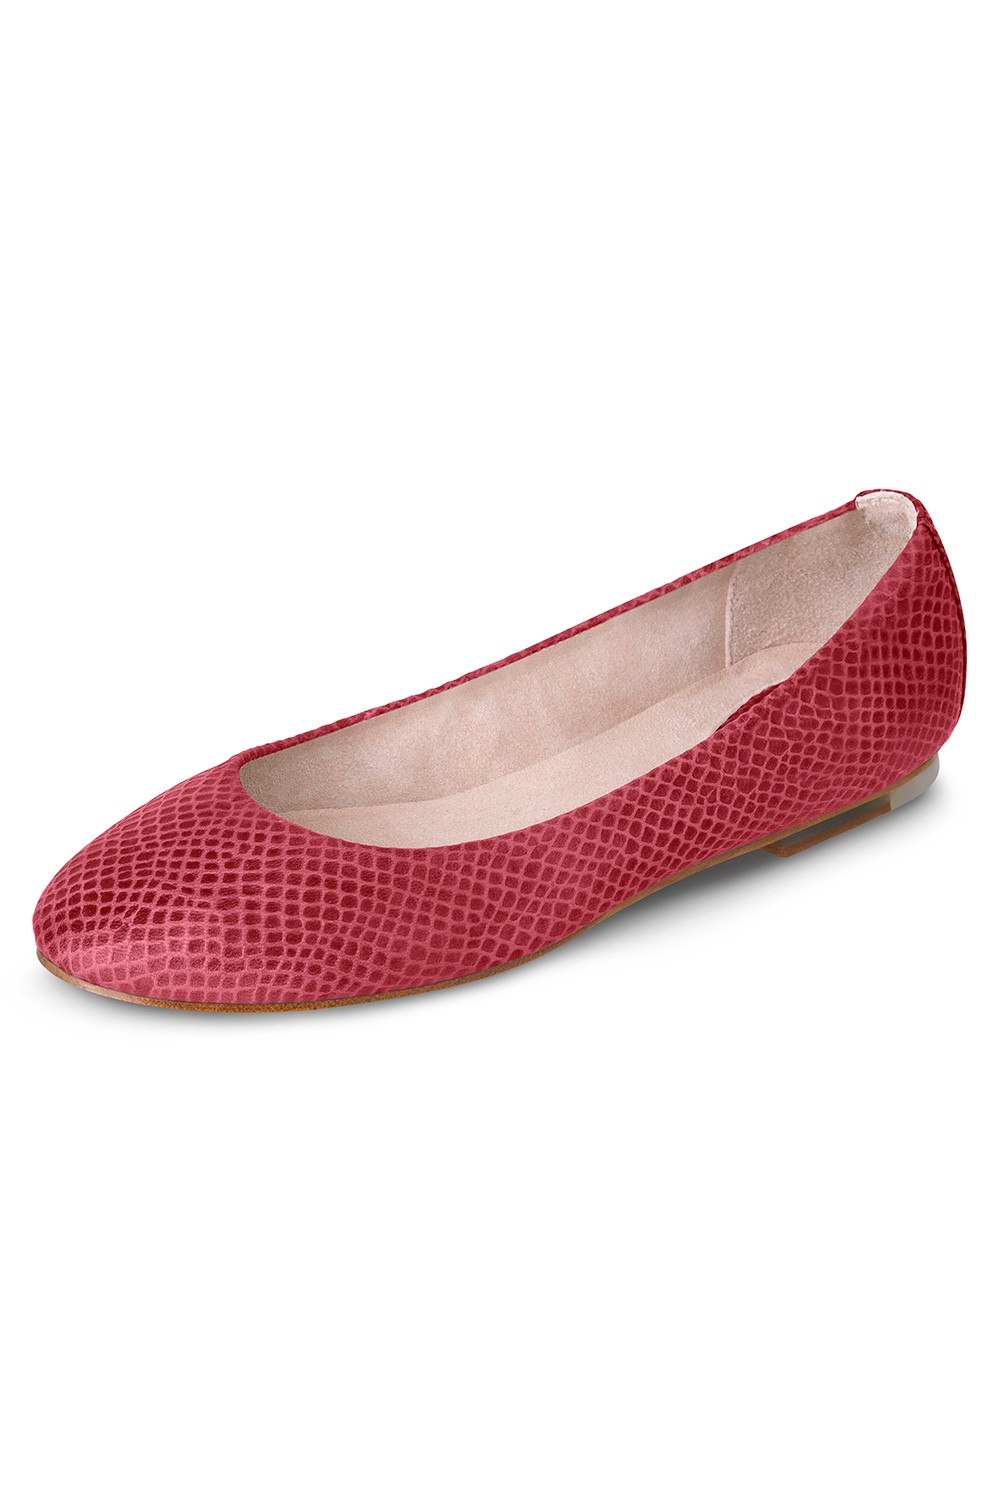 Pauline Snake Skin Ballet Flat Shoes Womens Fashion Shoes